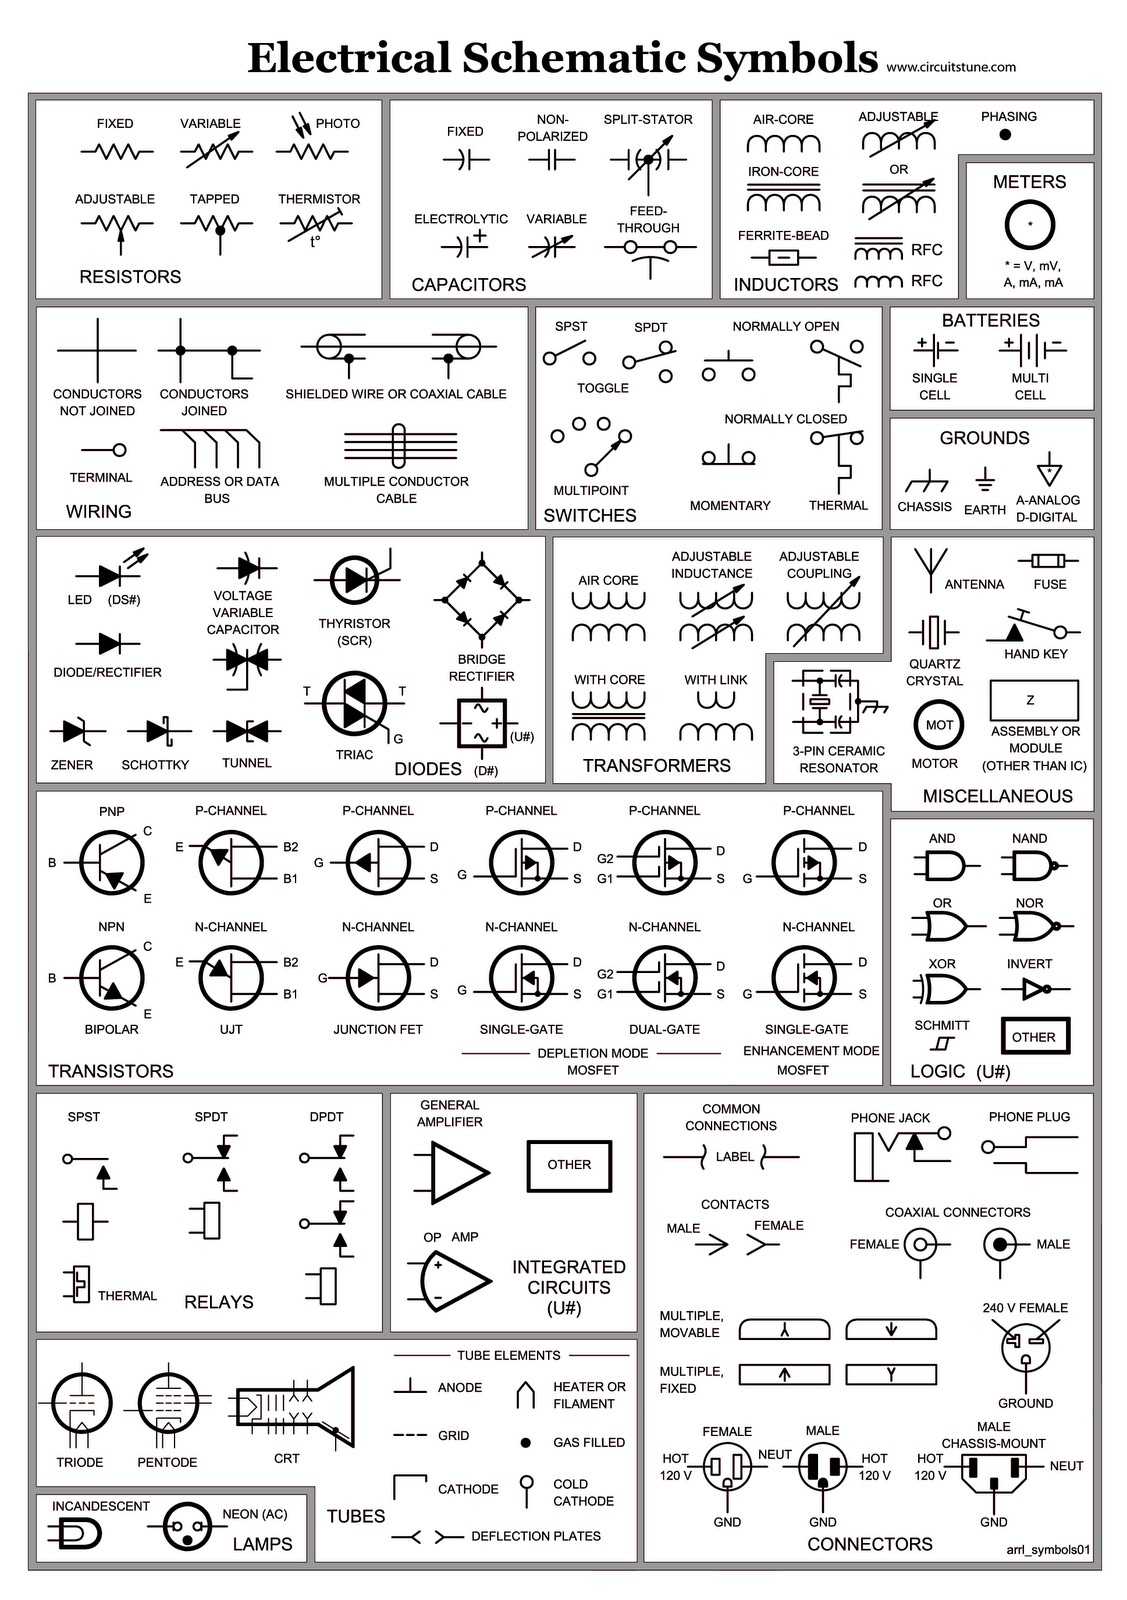 Residential Electrical Schematic Symbols | Wiring Diagram Image